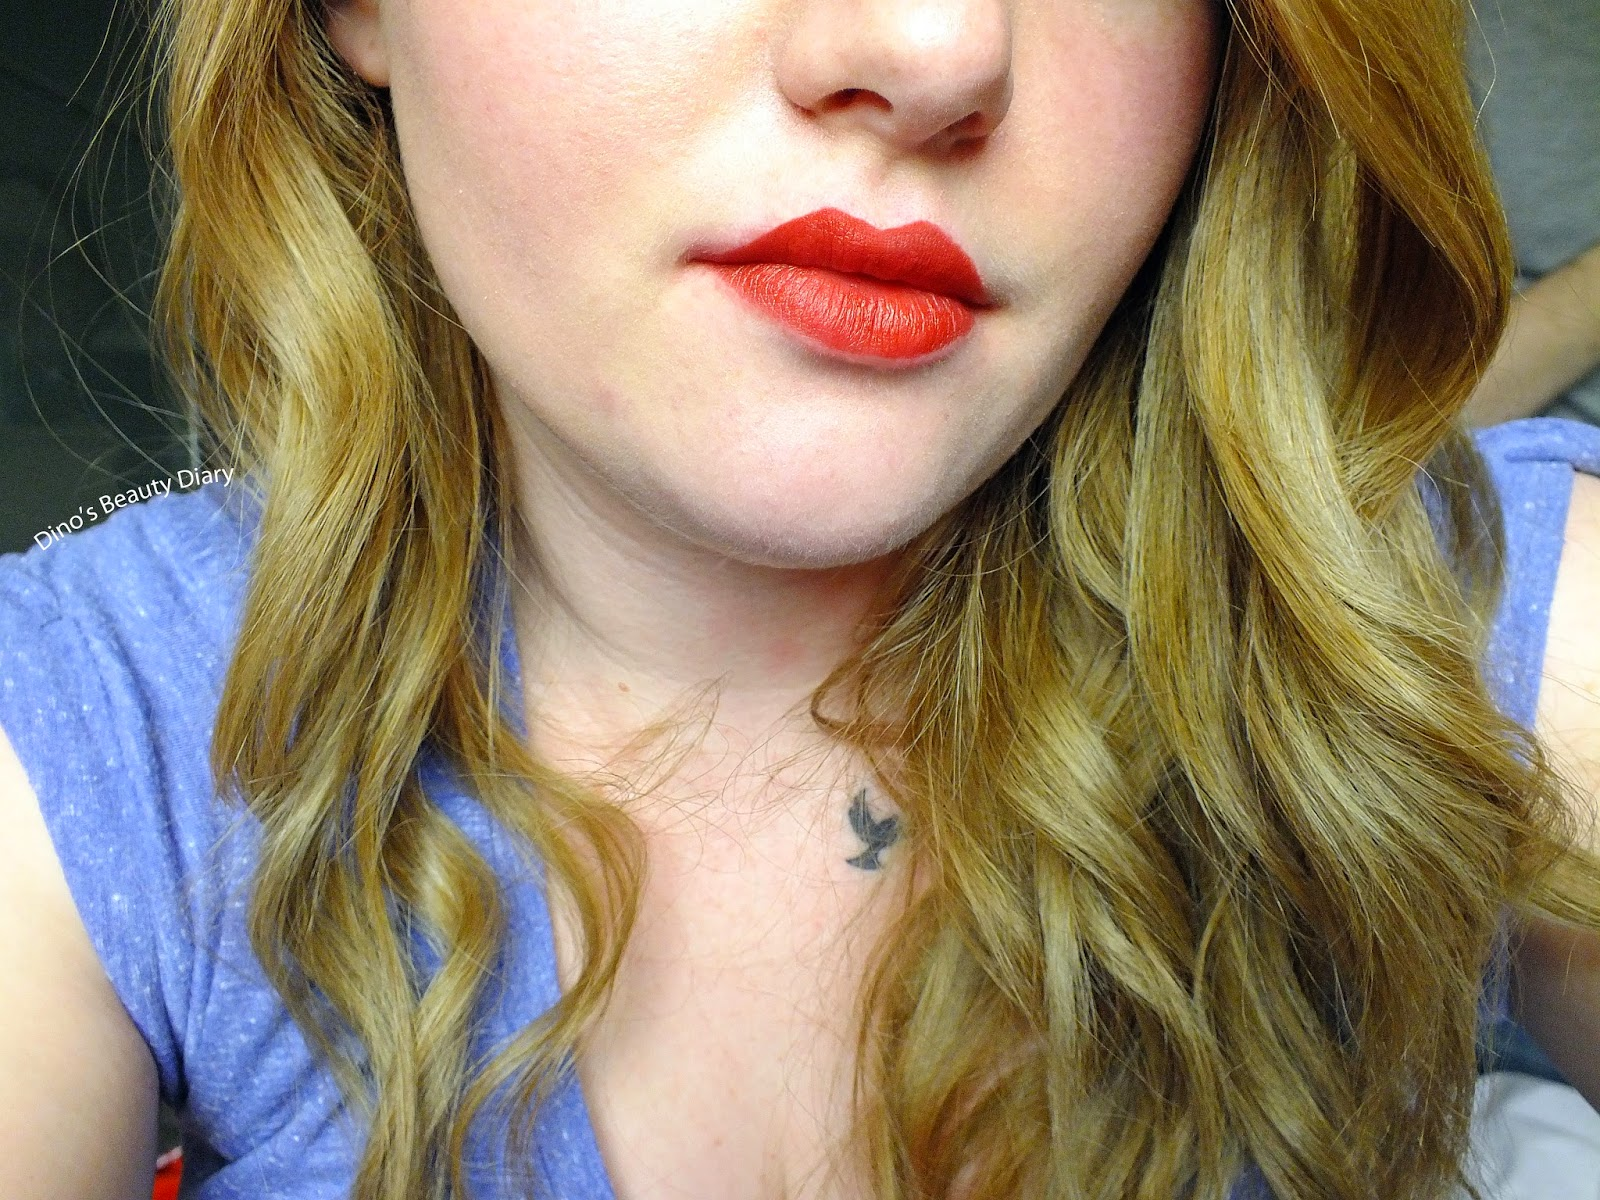 Dino's Beauty Diary - Make-Up Review - L'Oreal Paris Colour Riche Collection Exclusives - The Reds and The Nudes